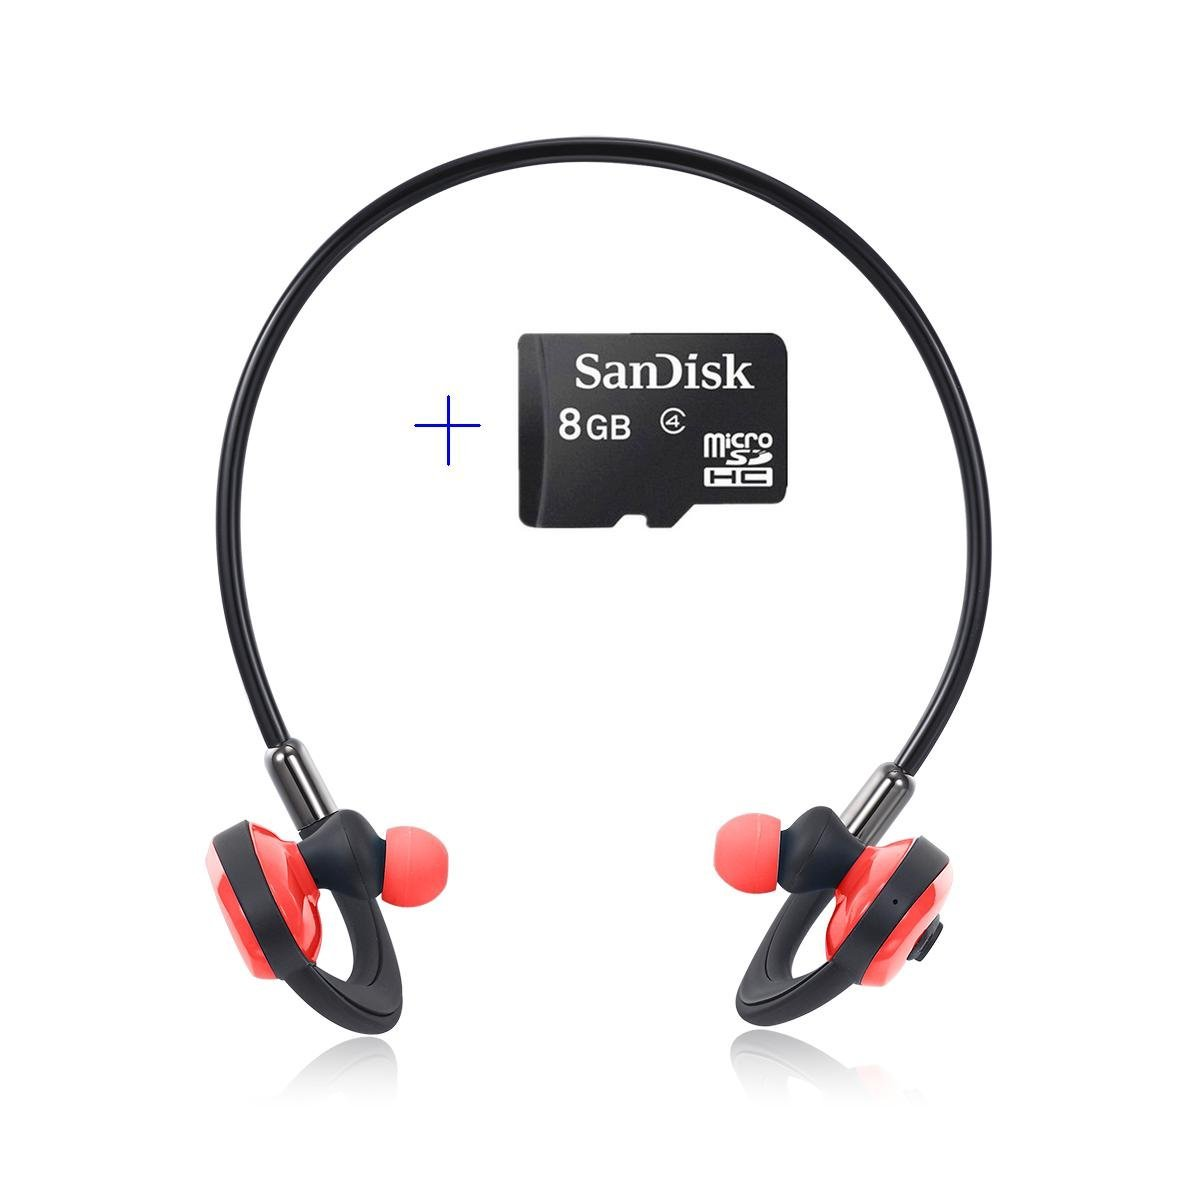 Bluetooth Swimming Headset HXY Wireless Headphones with 8GB Memory Noise_Cancelling in Ear Red